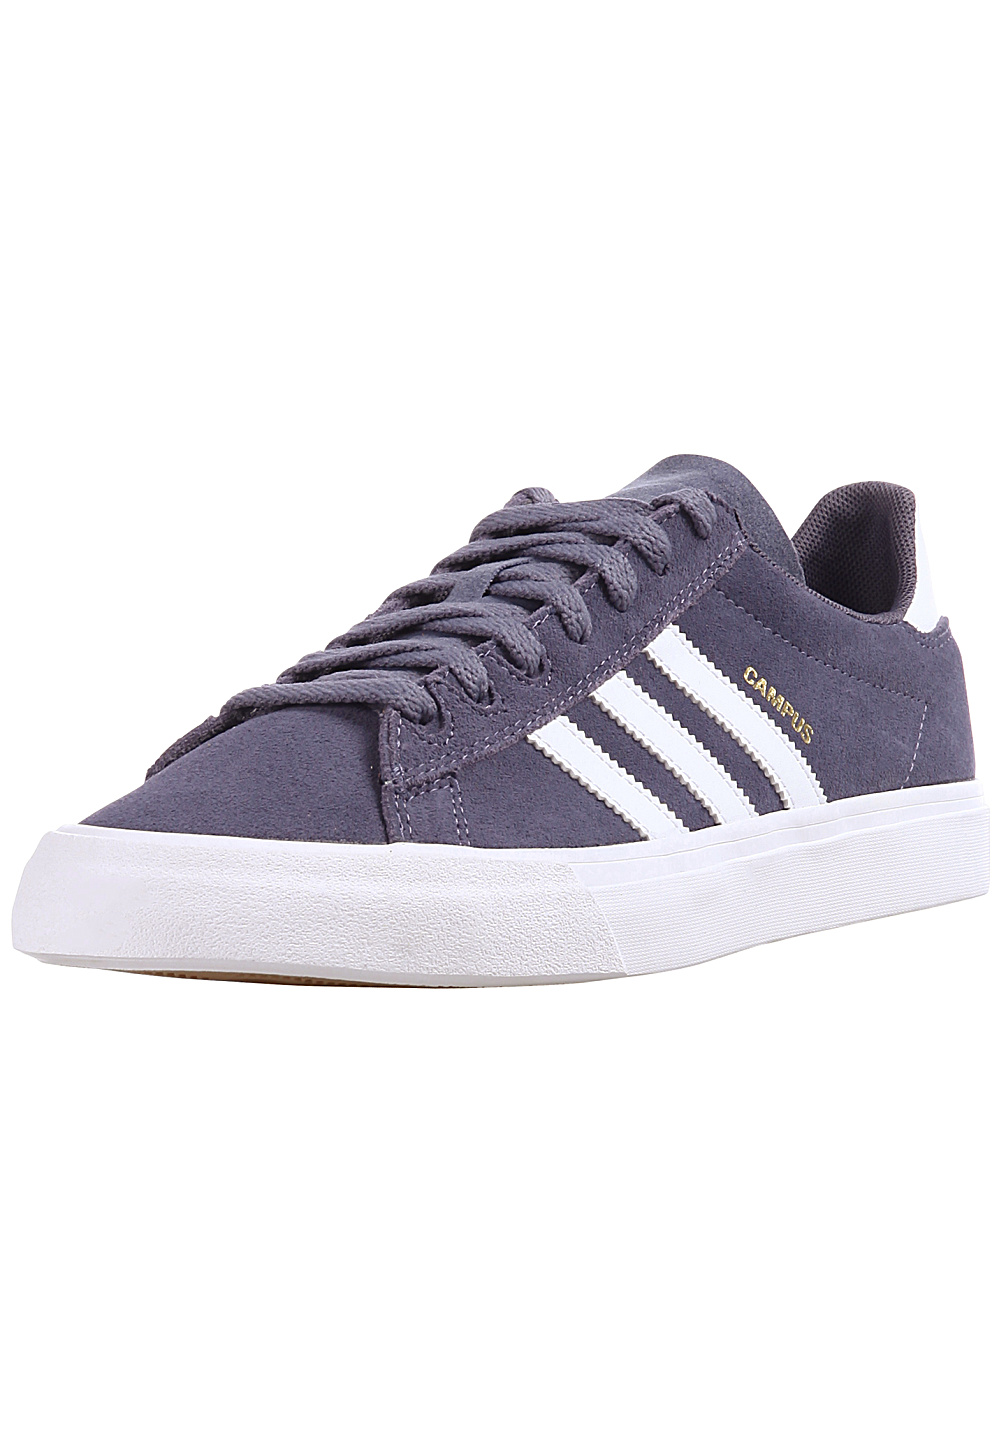 43442e0f7 Adidas Skateboarding Campus Vulc II - Sneakers for Men - Blue ...